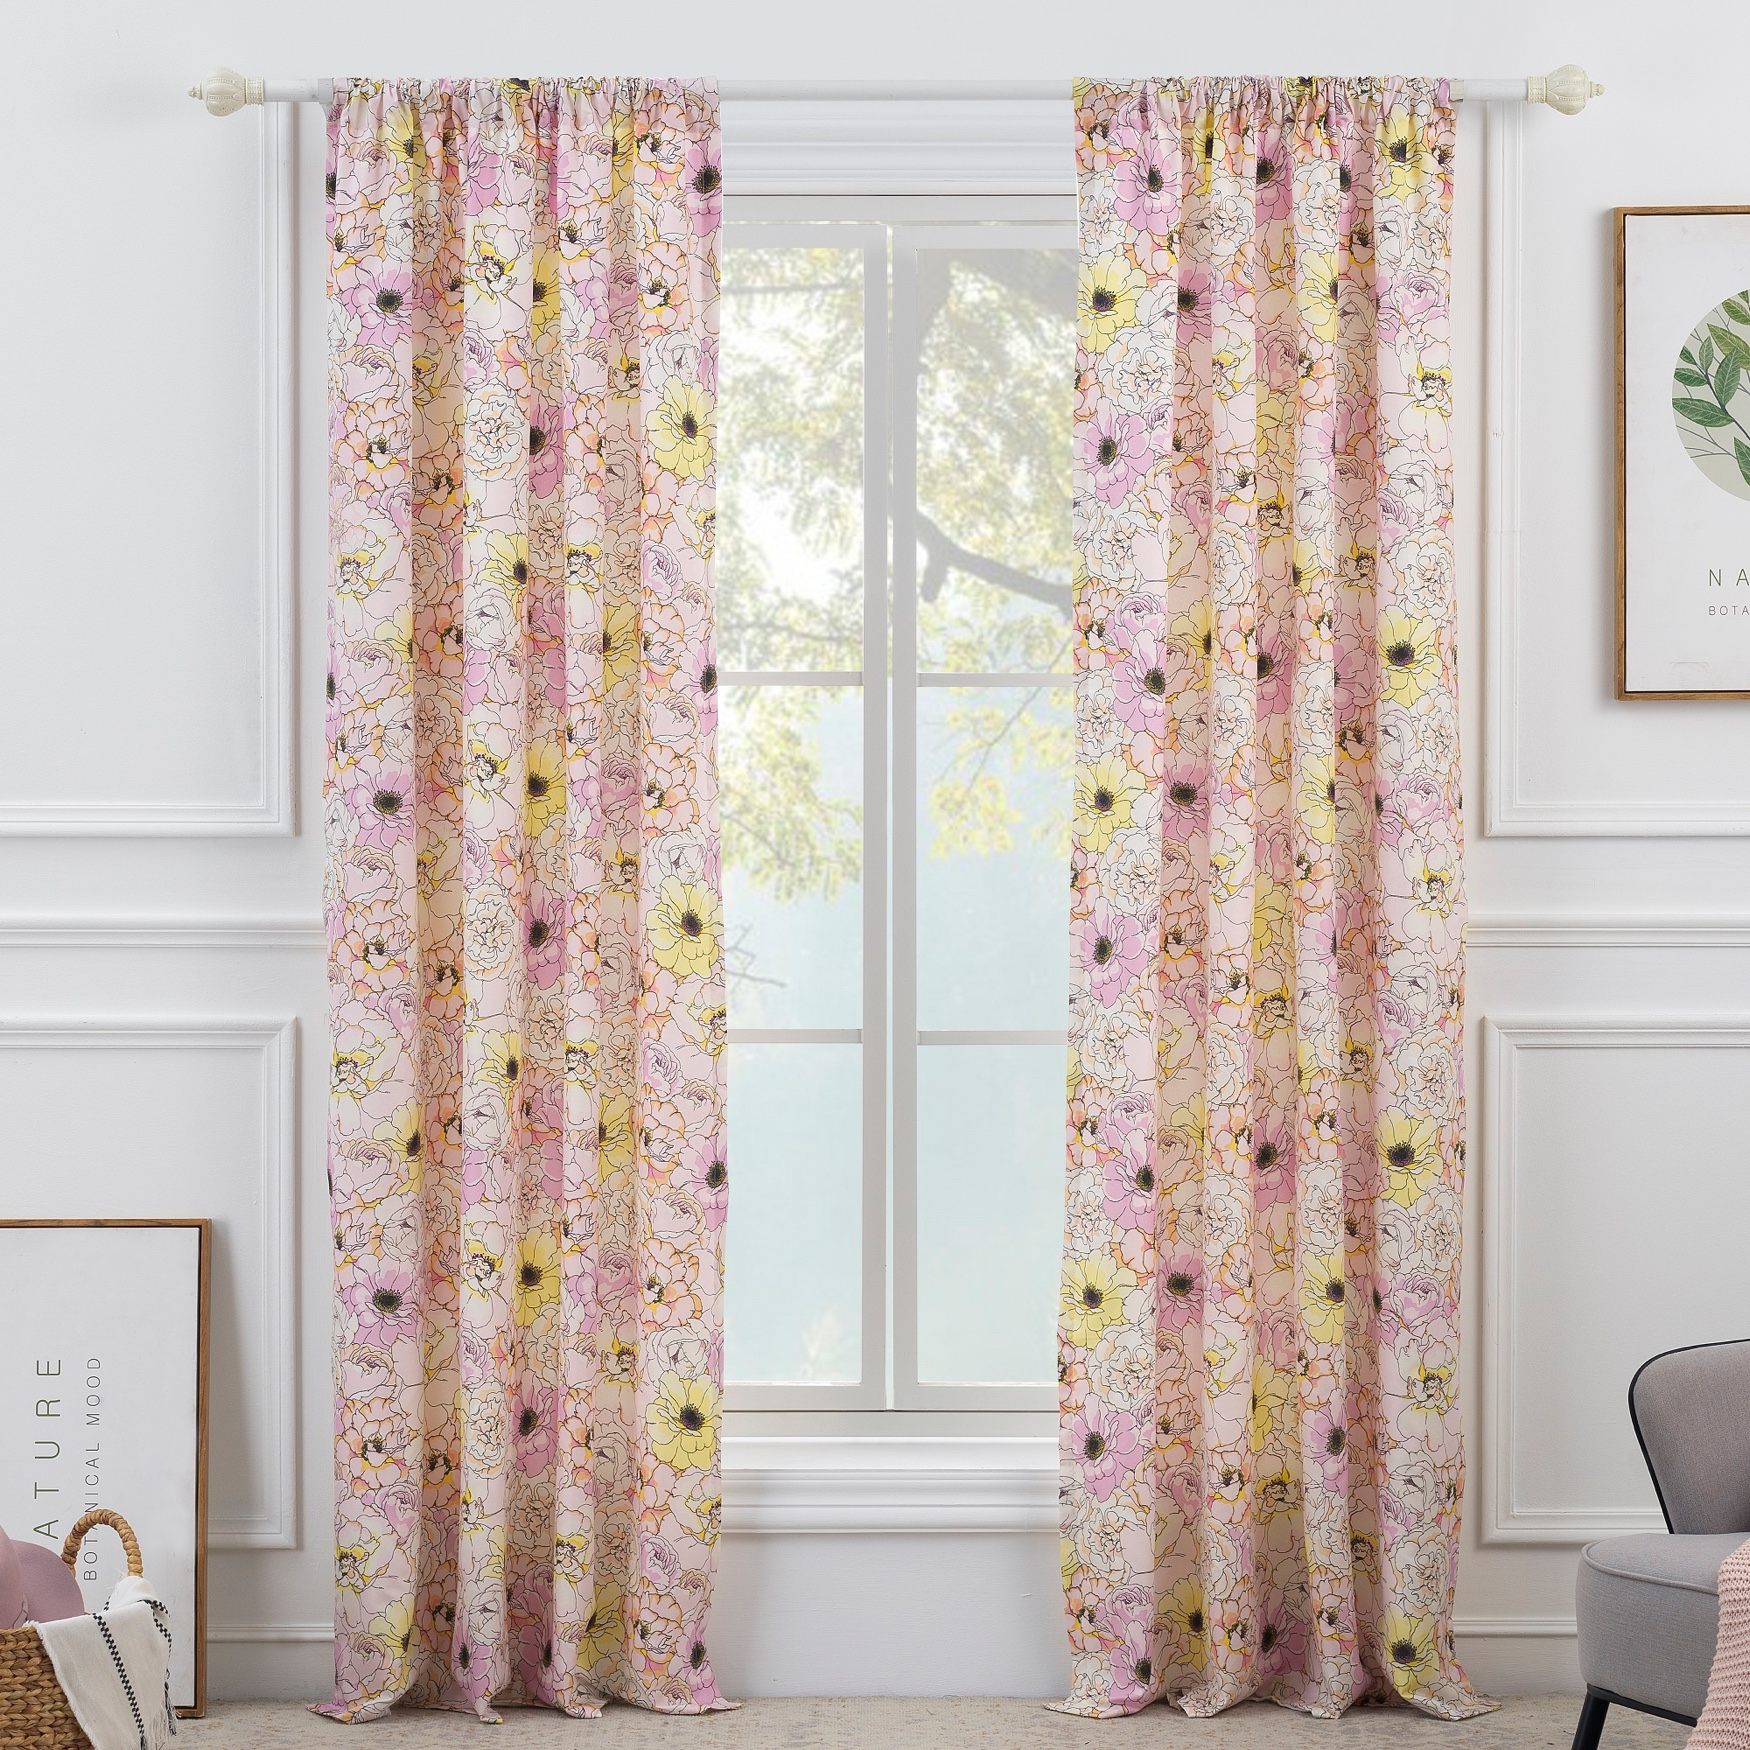 Greenland Home Misty Bloom Curtain Panel, PINK